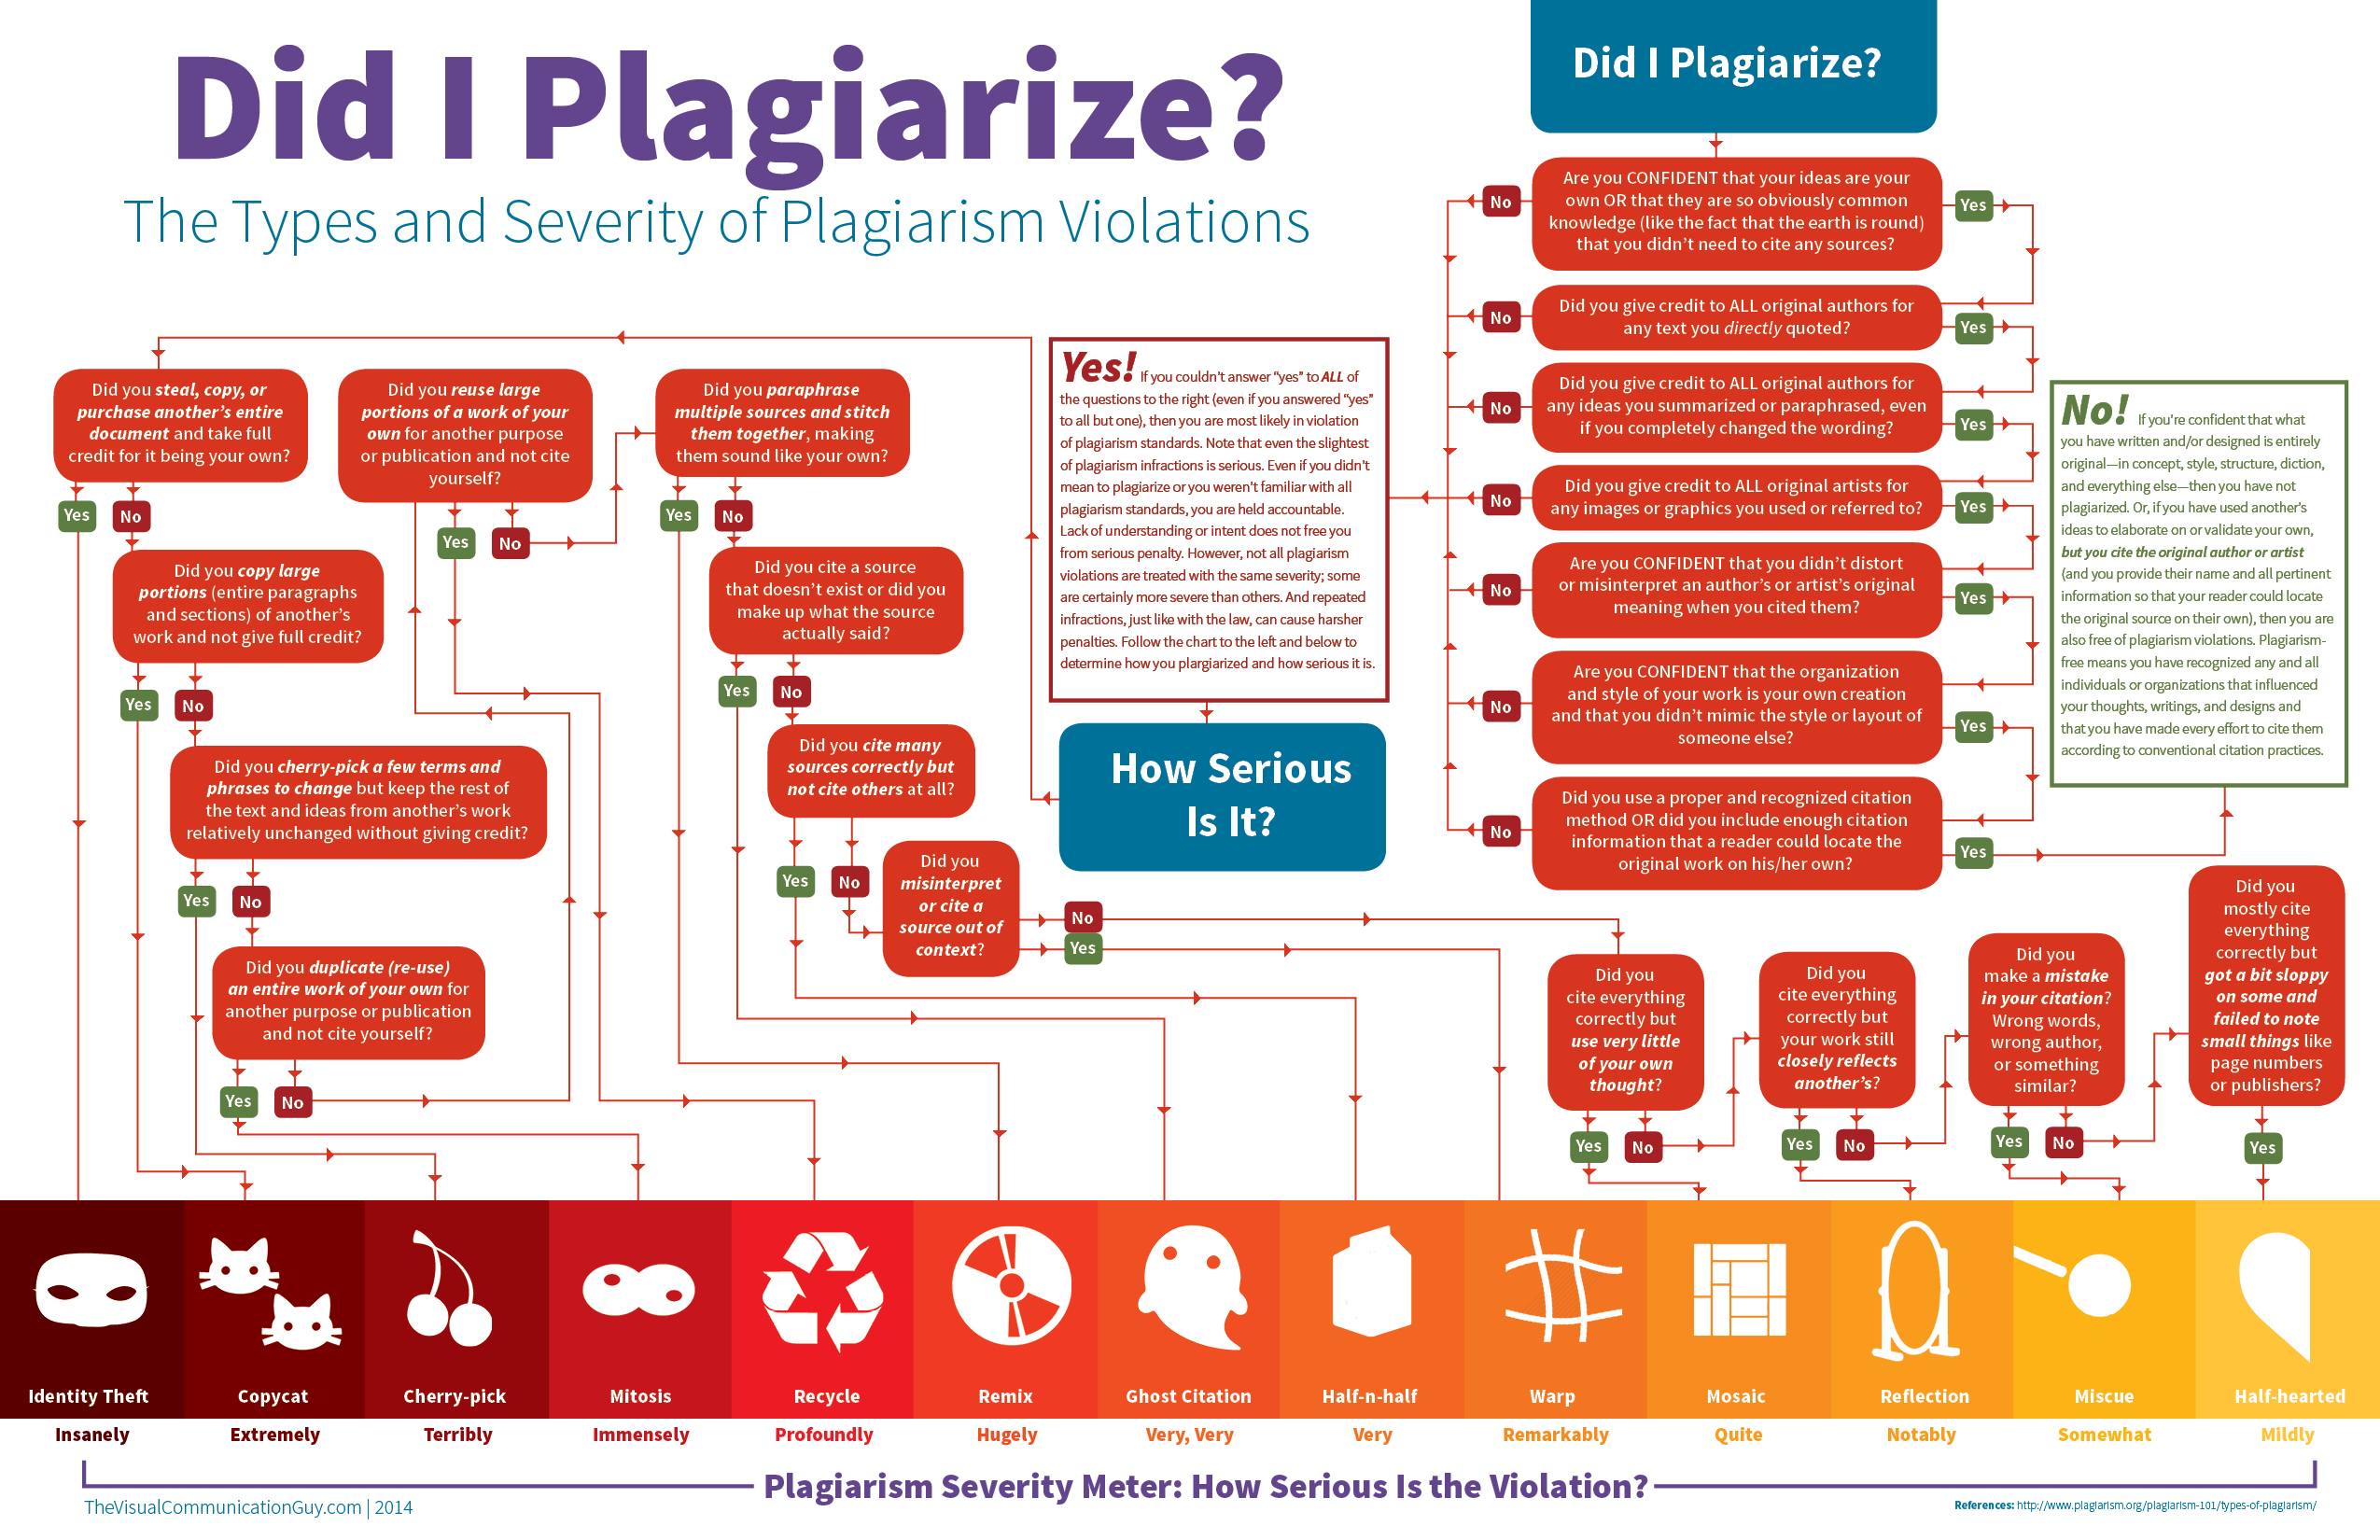 http://thevisualcommunicationguy.com/wp-content/uploads/2014/09/Infographic_Did-I-Plagiarize1.jpg